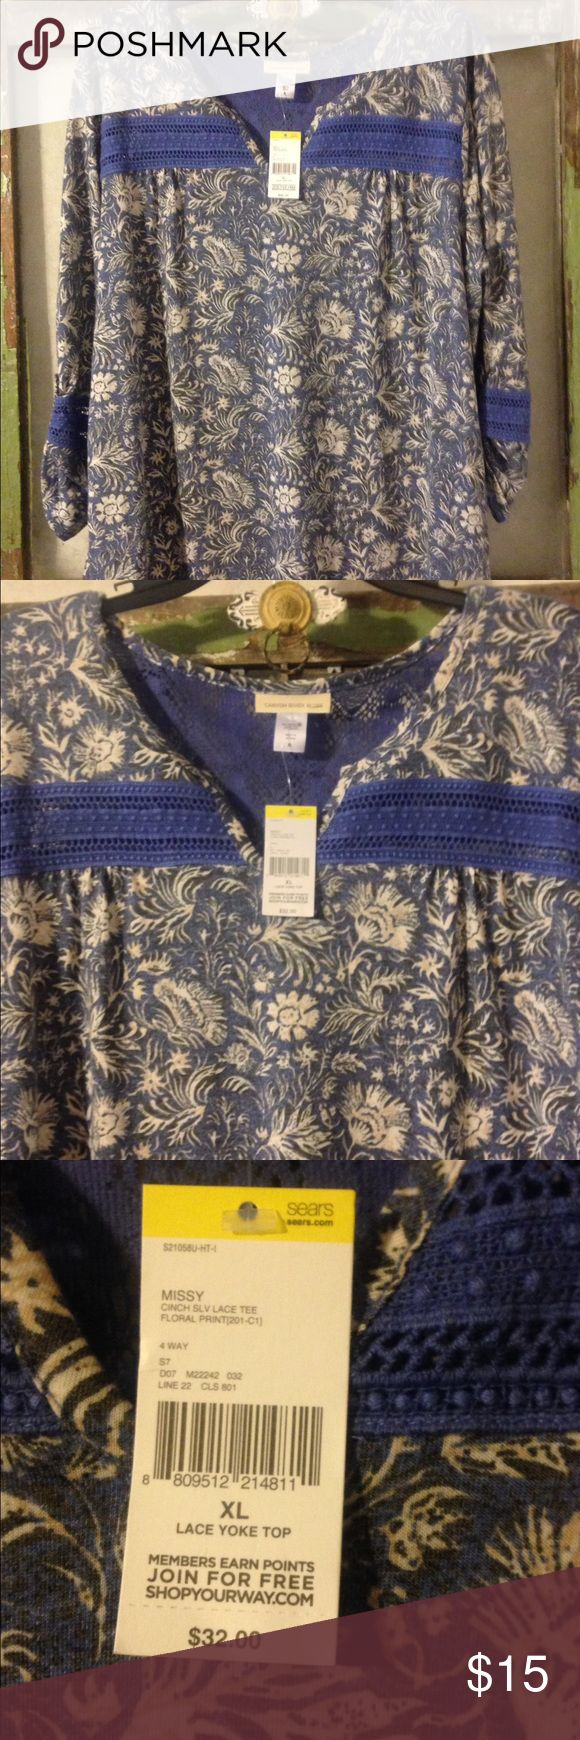 New, Canyon River Blues Shirt. Size XL New, Canyon River Blues Shirt. Size XL Canyon River Blues Tops